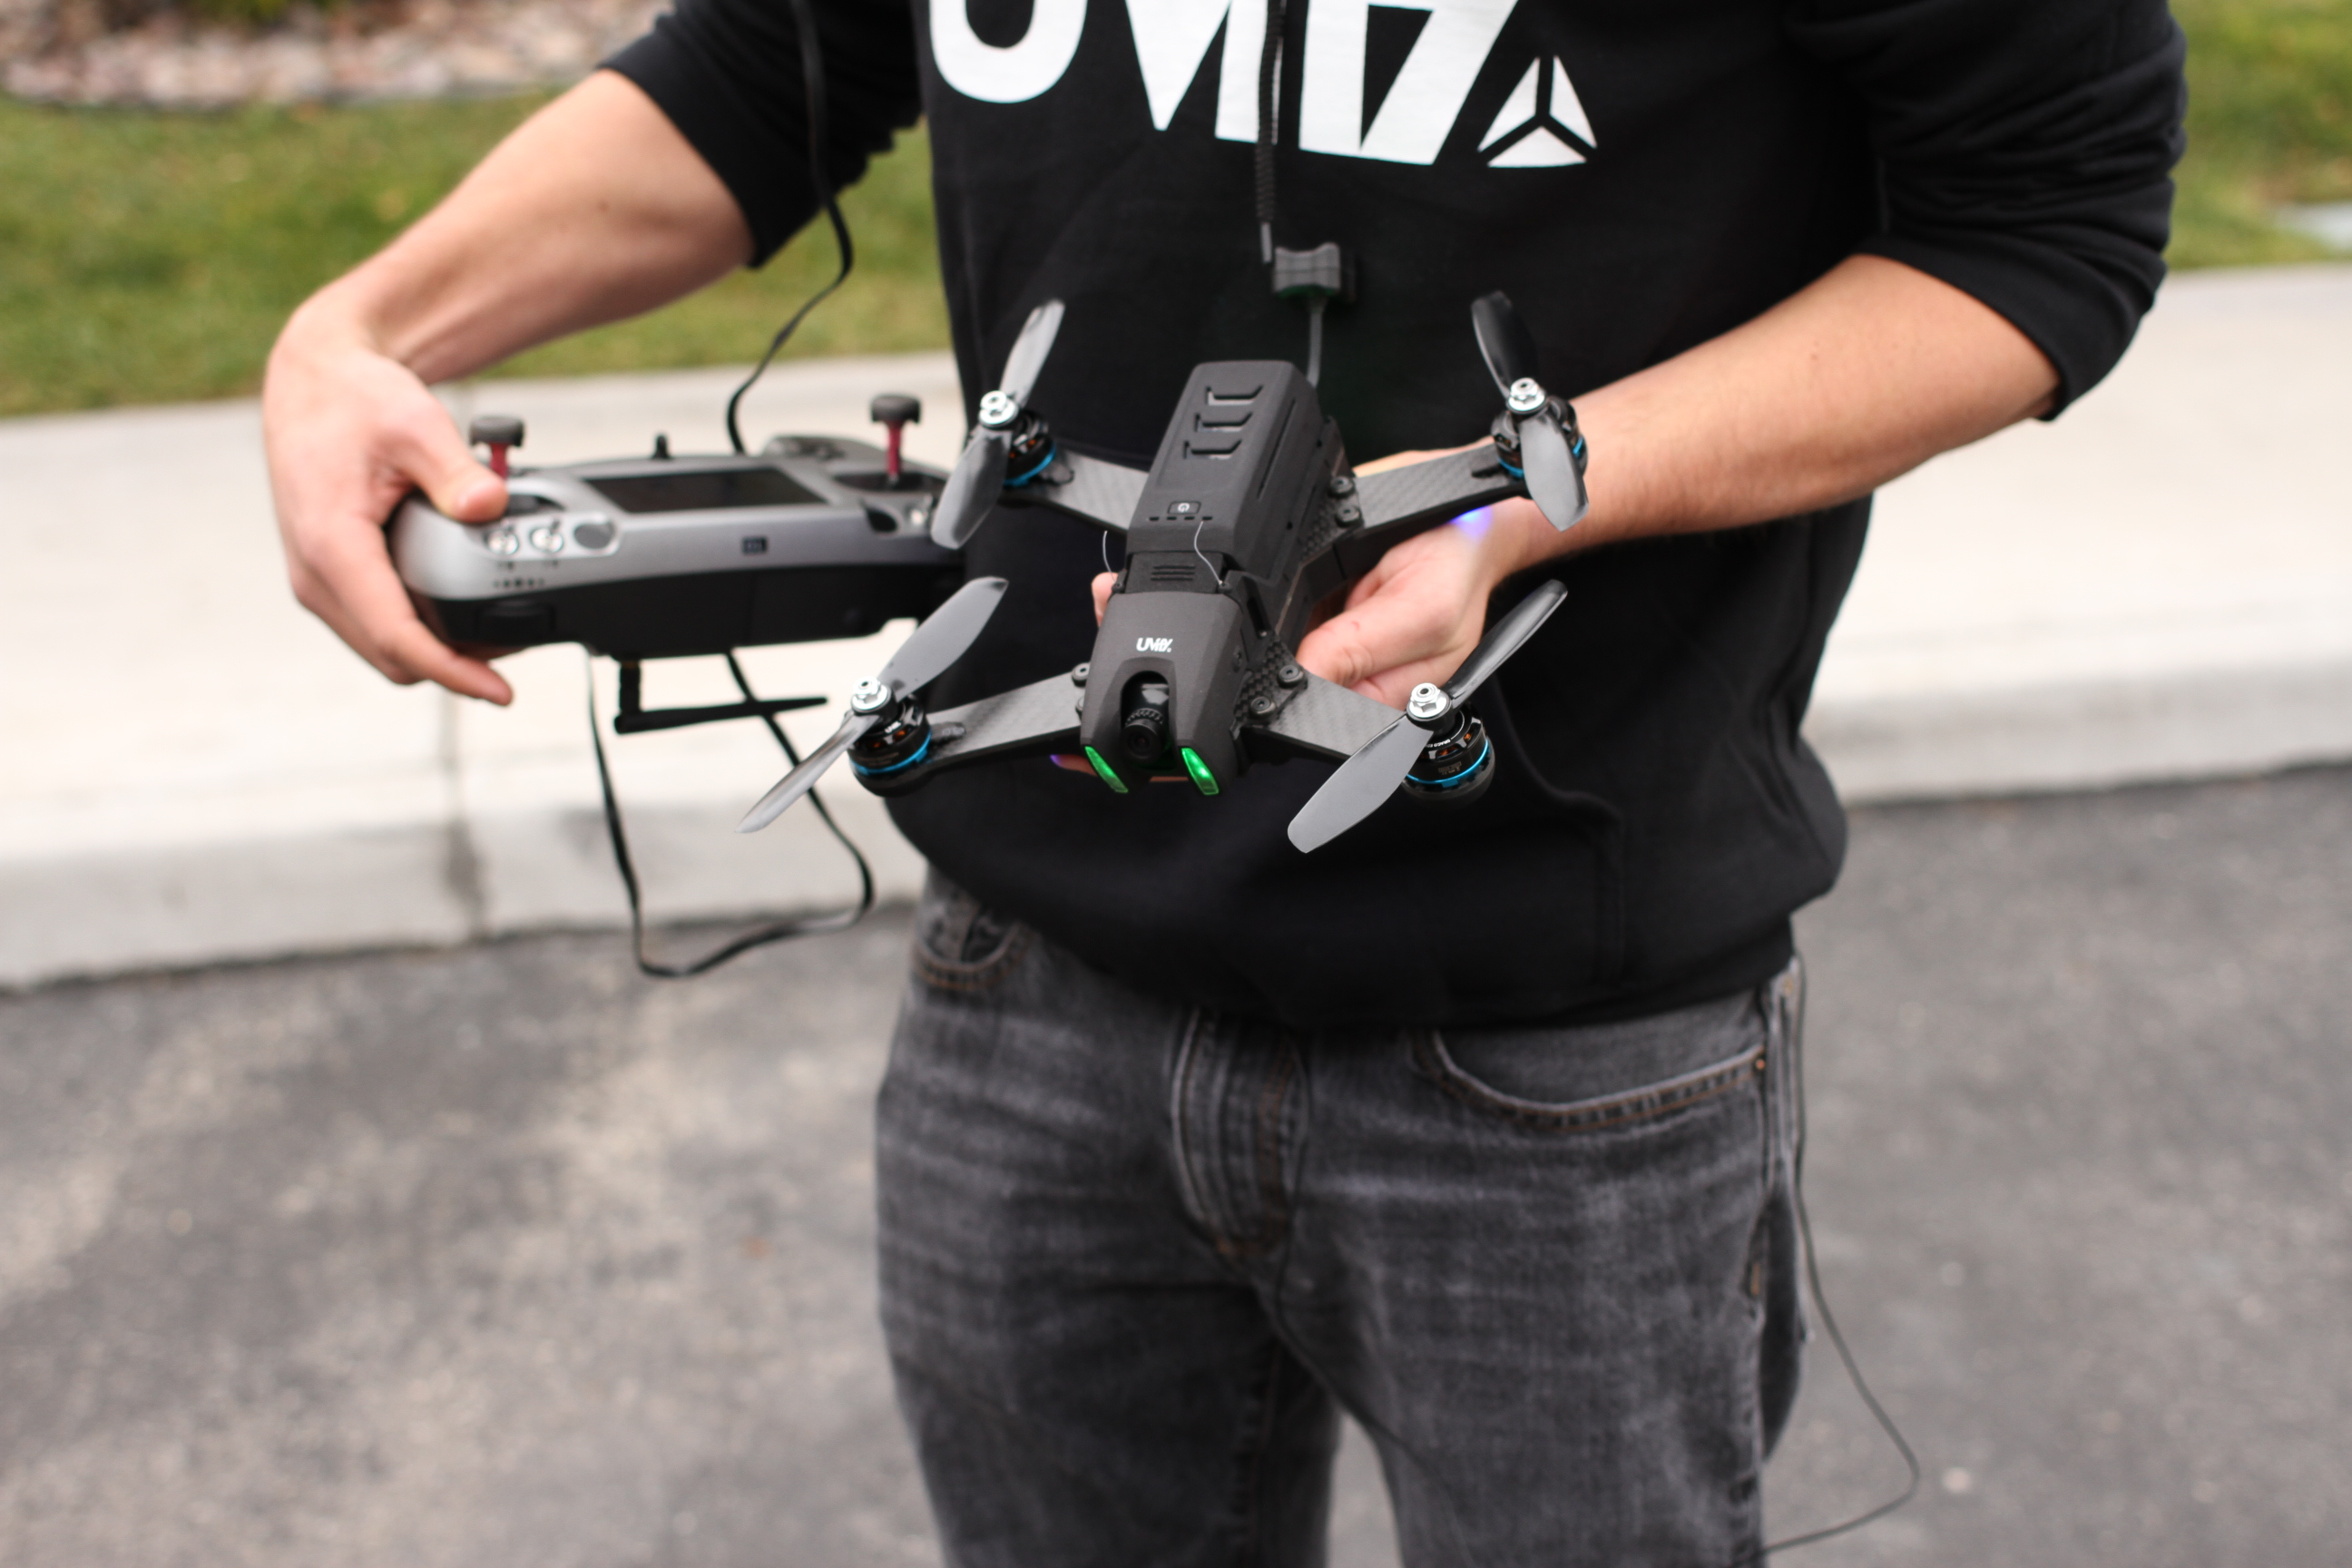 UVify's plucky little Draco drone hits speeds up to 100 miles an